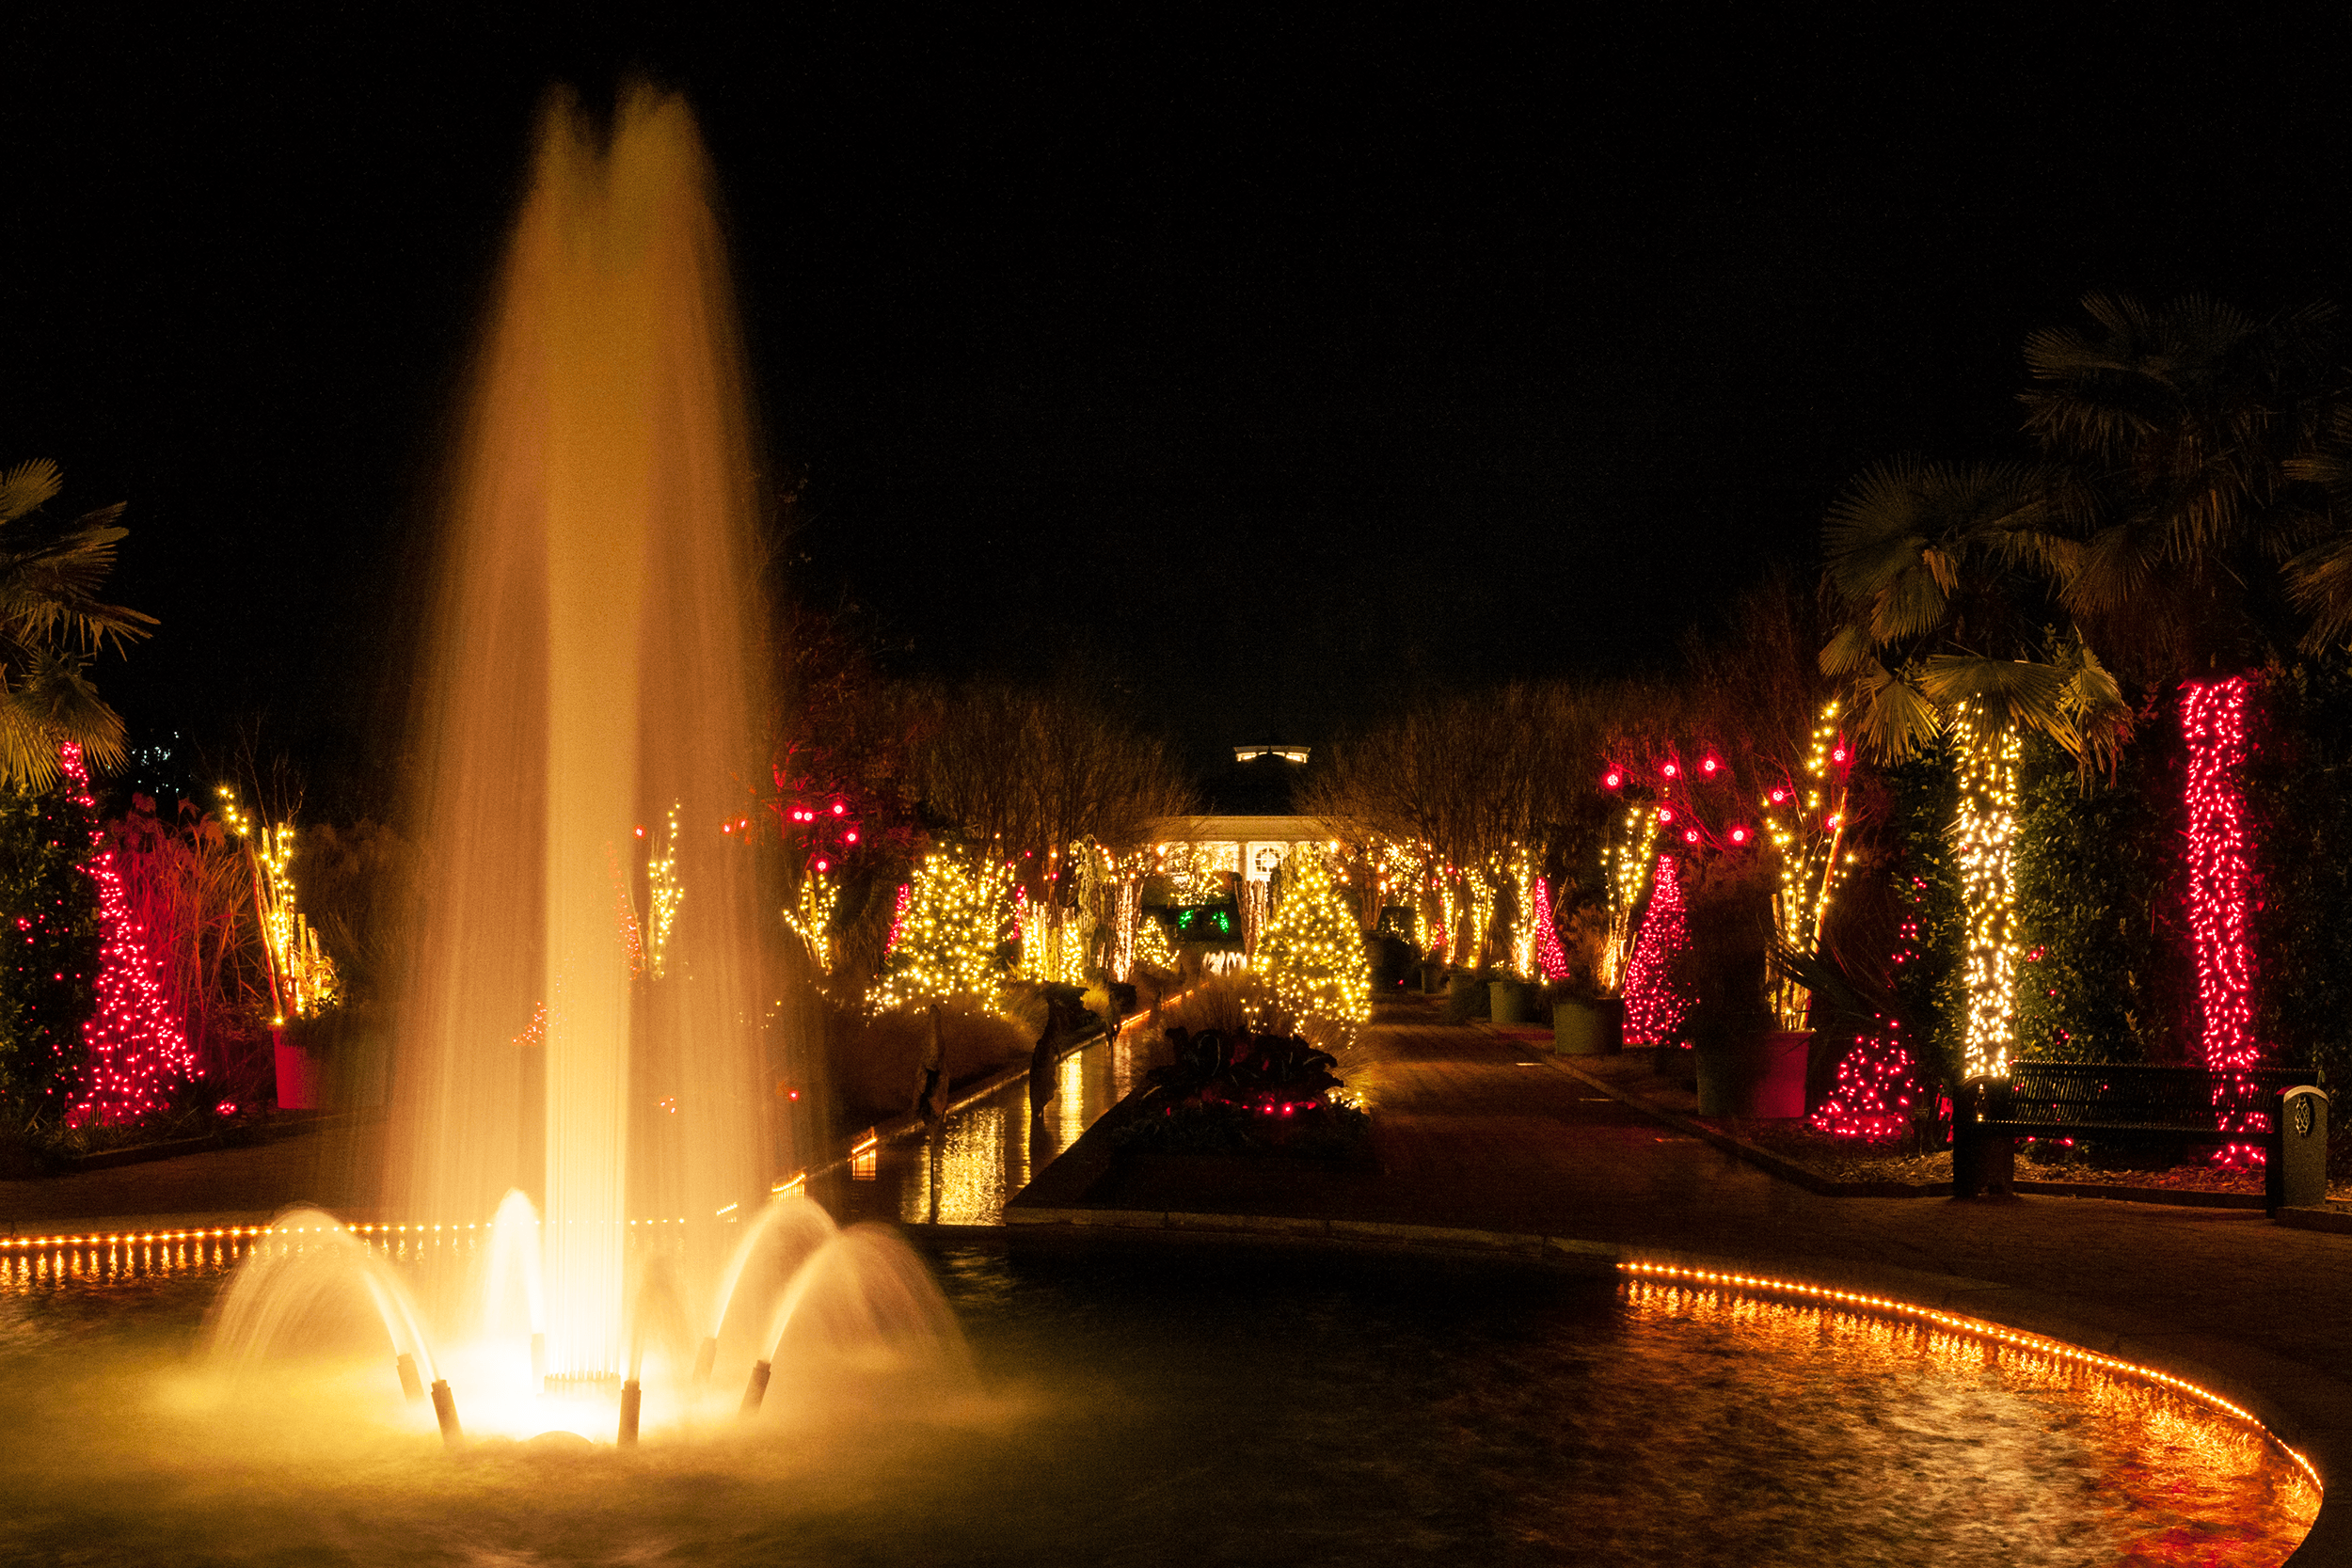 The Garden is a fantastic destination in spring, summer, and fall but it turns spectacular during the annual Holidays at the Garden event between Thanksgiving and Christmas. The Garden is then tastefully lit - a true festival of lights. Holiday tunes play in the background. When you get a little cold, well, will a cup of hot chocolate warm you up?